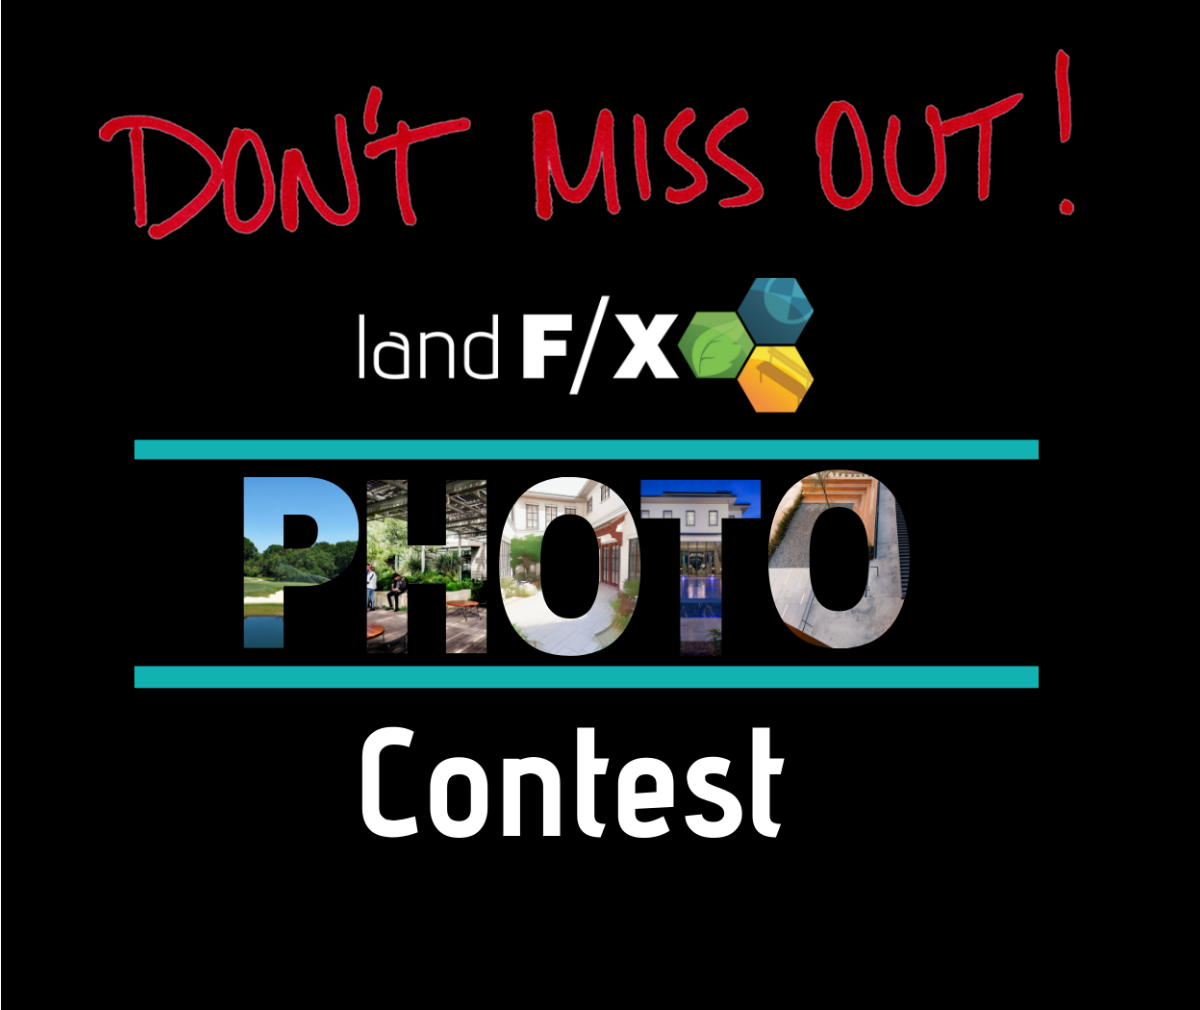 Don't Miss Your Chance to Enter our Photo Contest